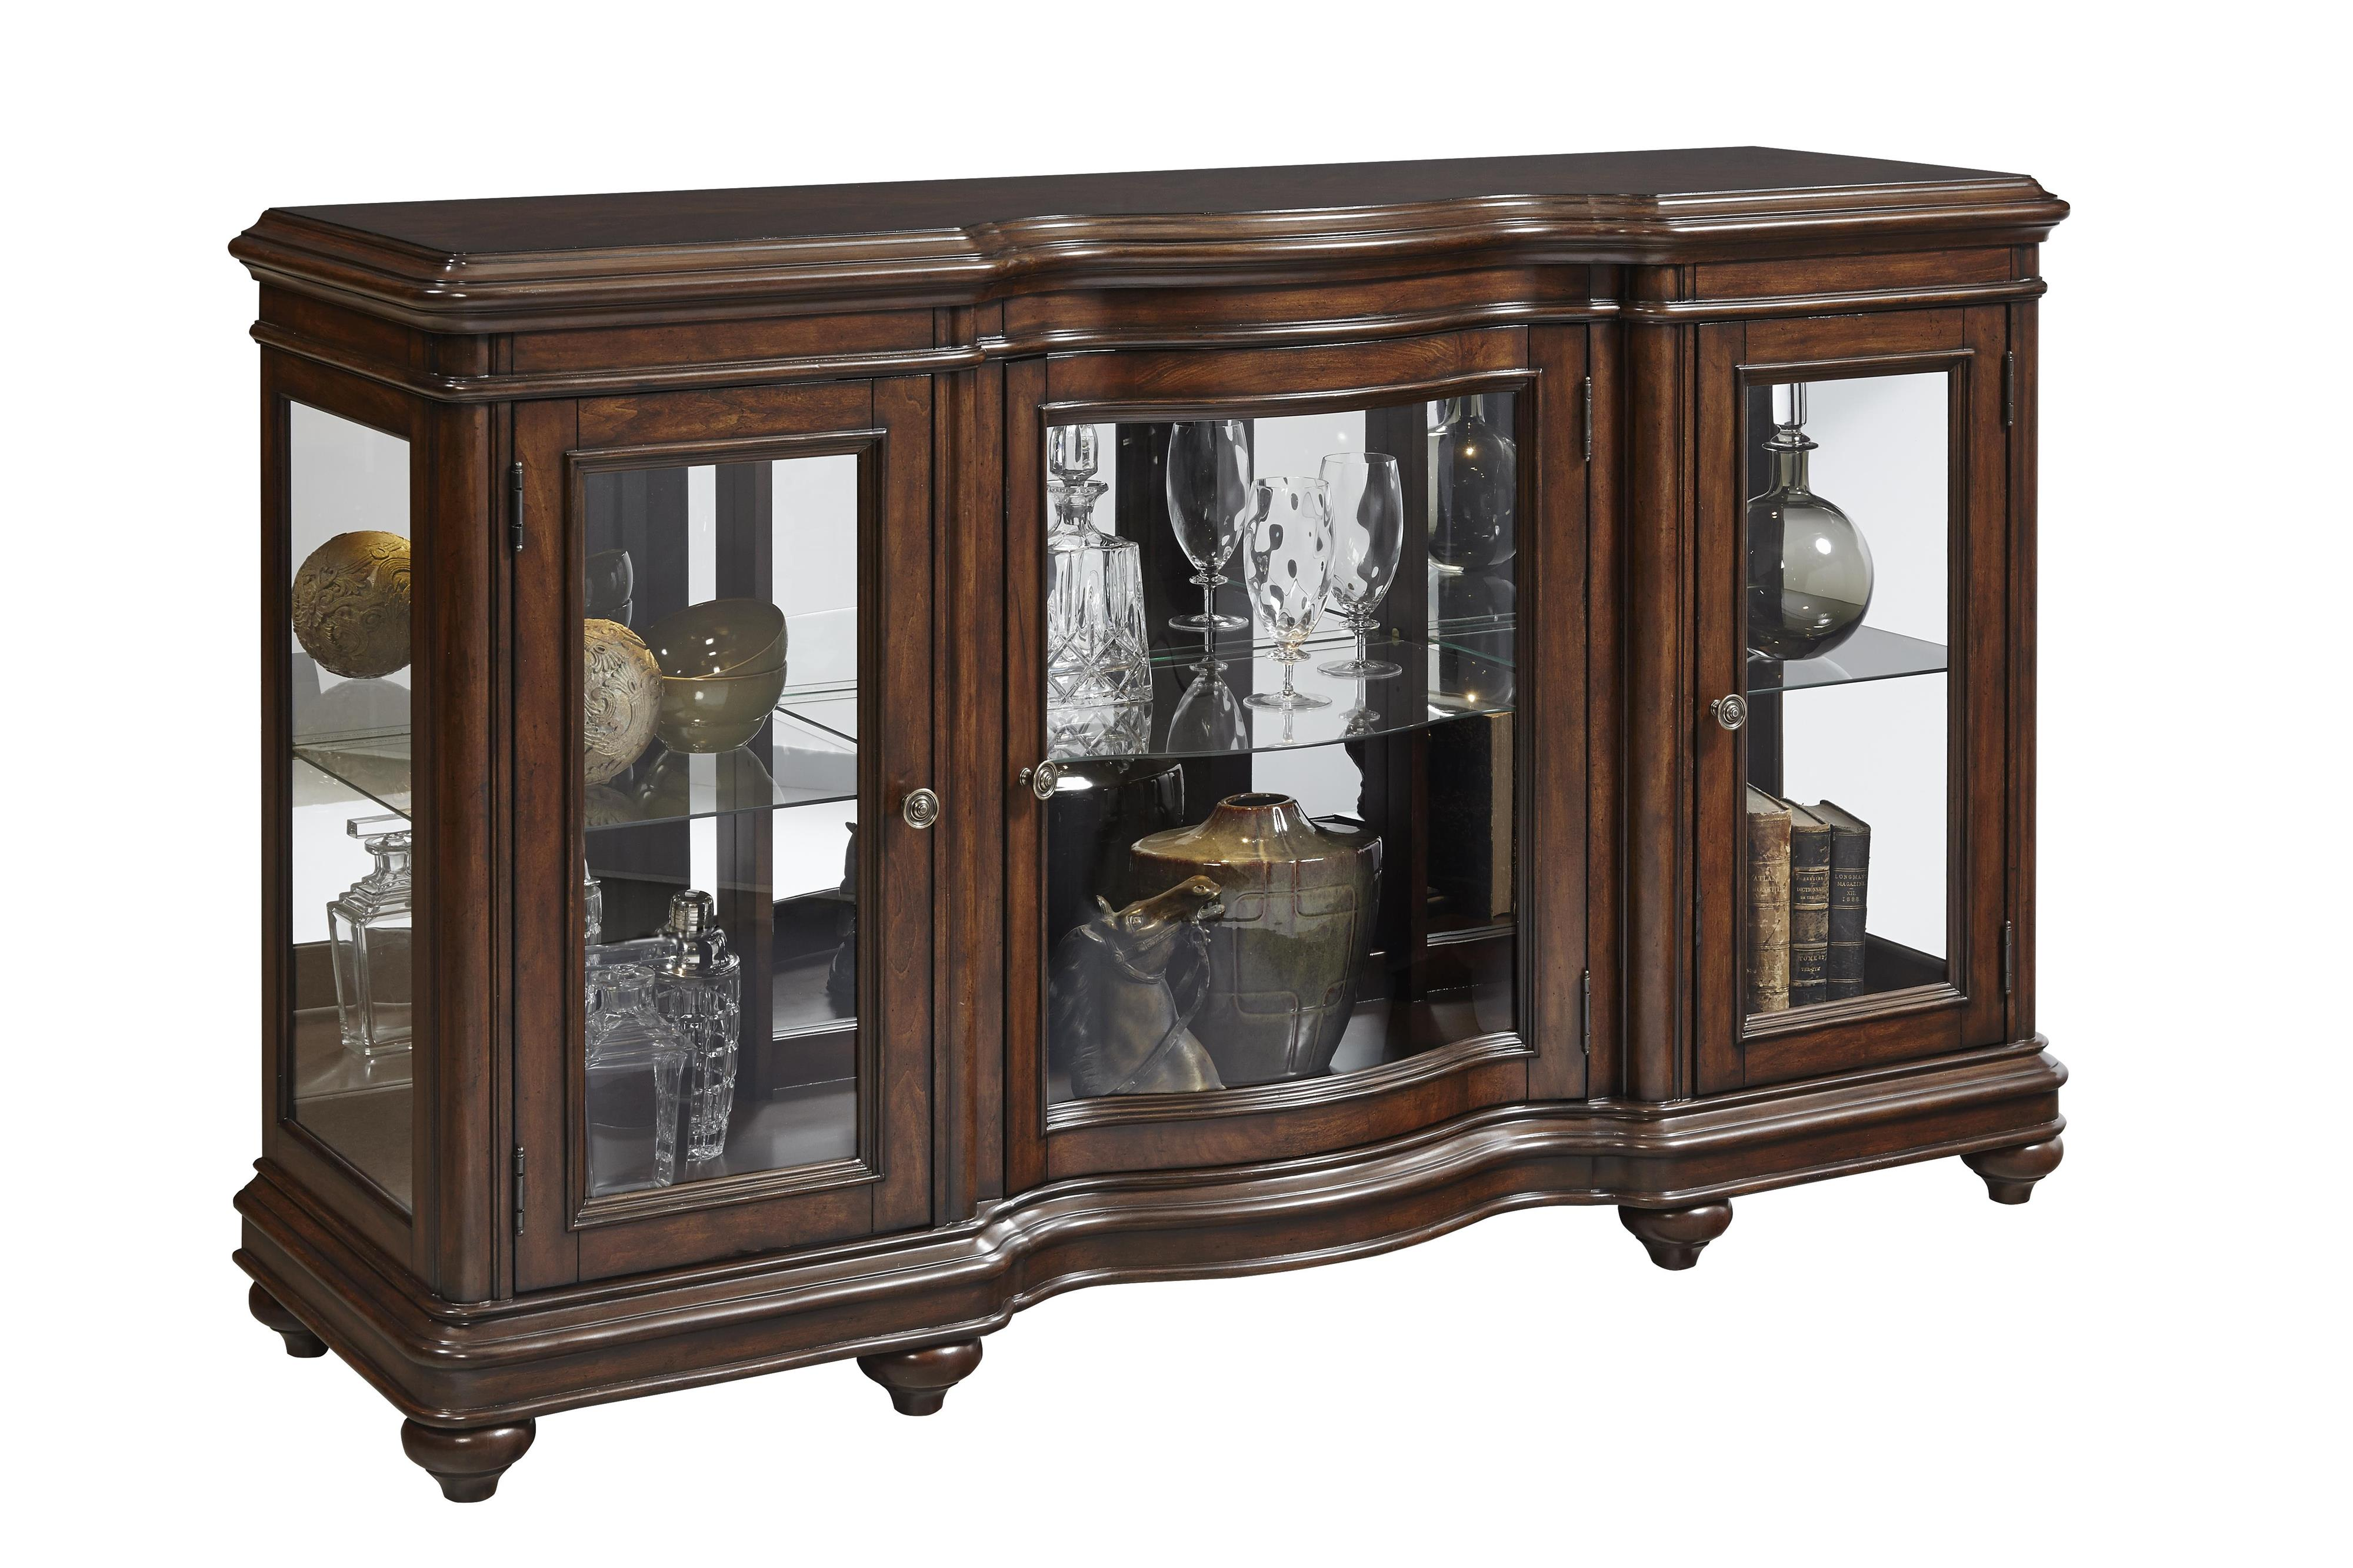 Pulaski Furniture Accents Harley Console - Item Number: 21524